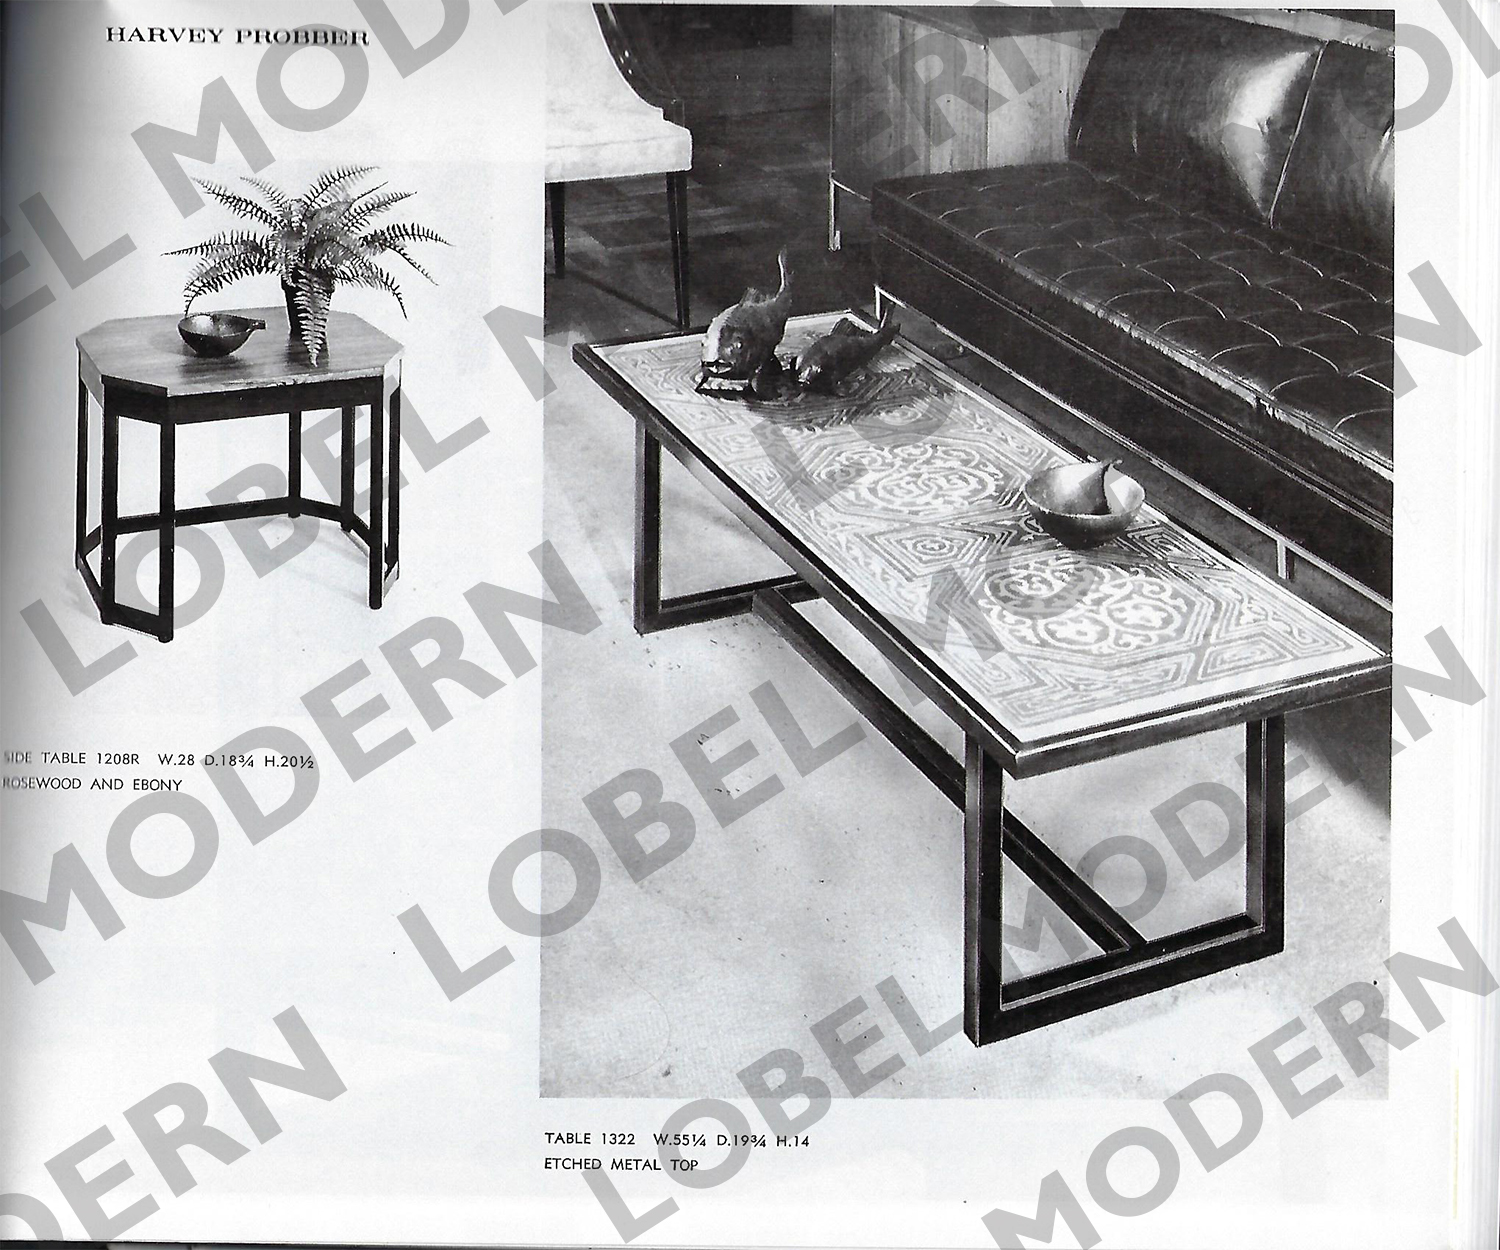 Probber 120 etched metal top coffeetable402 catalogscan lobel modern.jpg